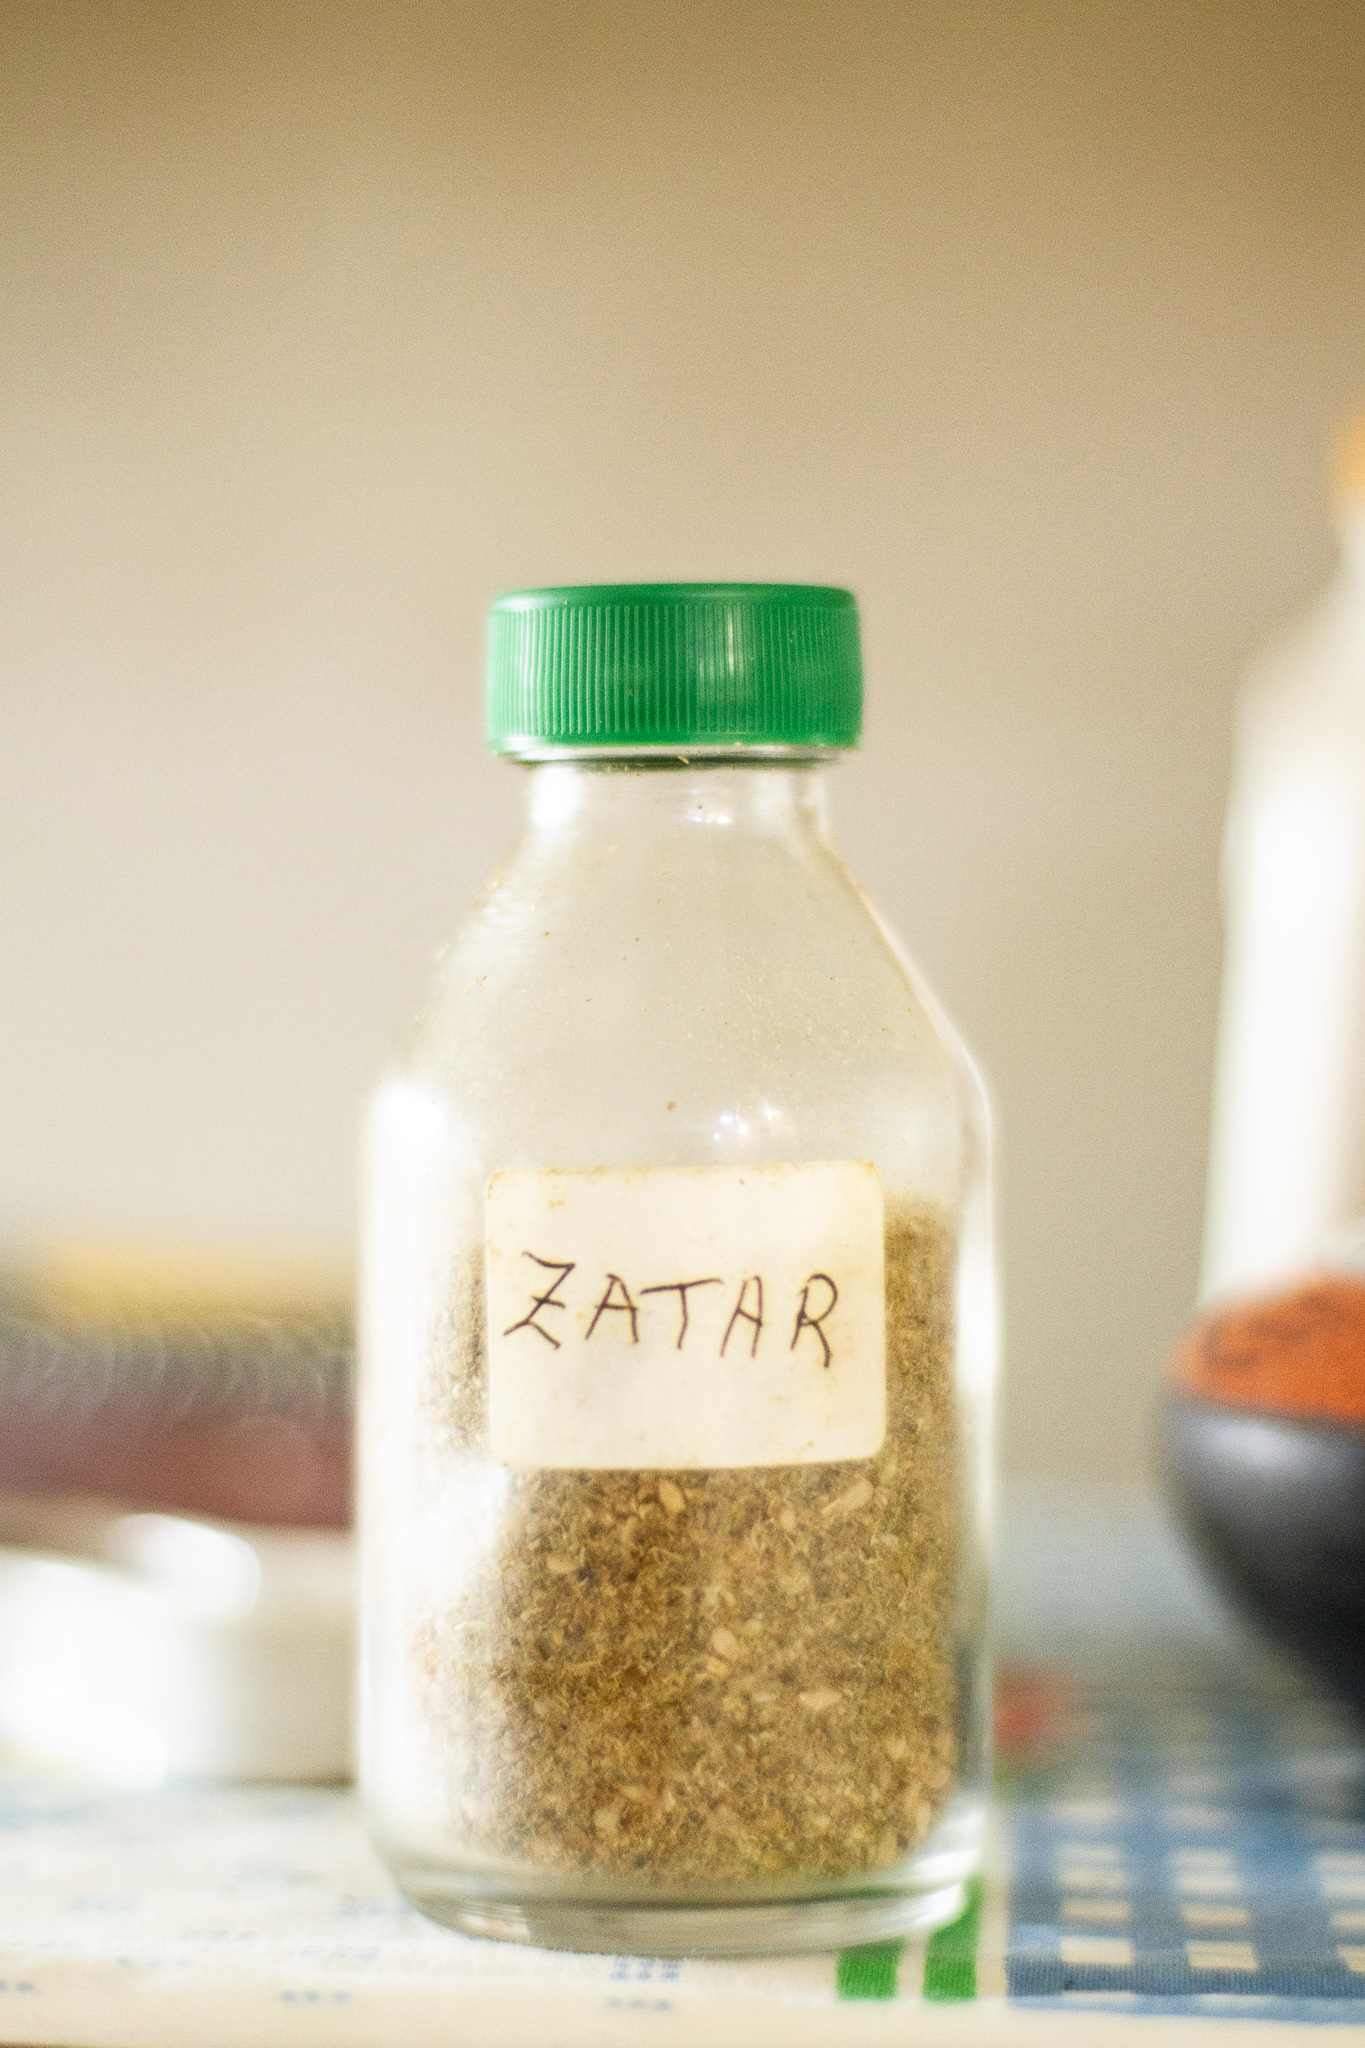 A bottle of za'atar in Aida's, a token of her trip to Lebanon.